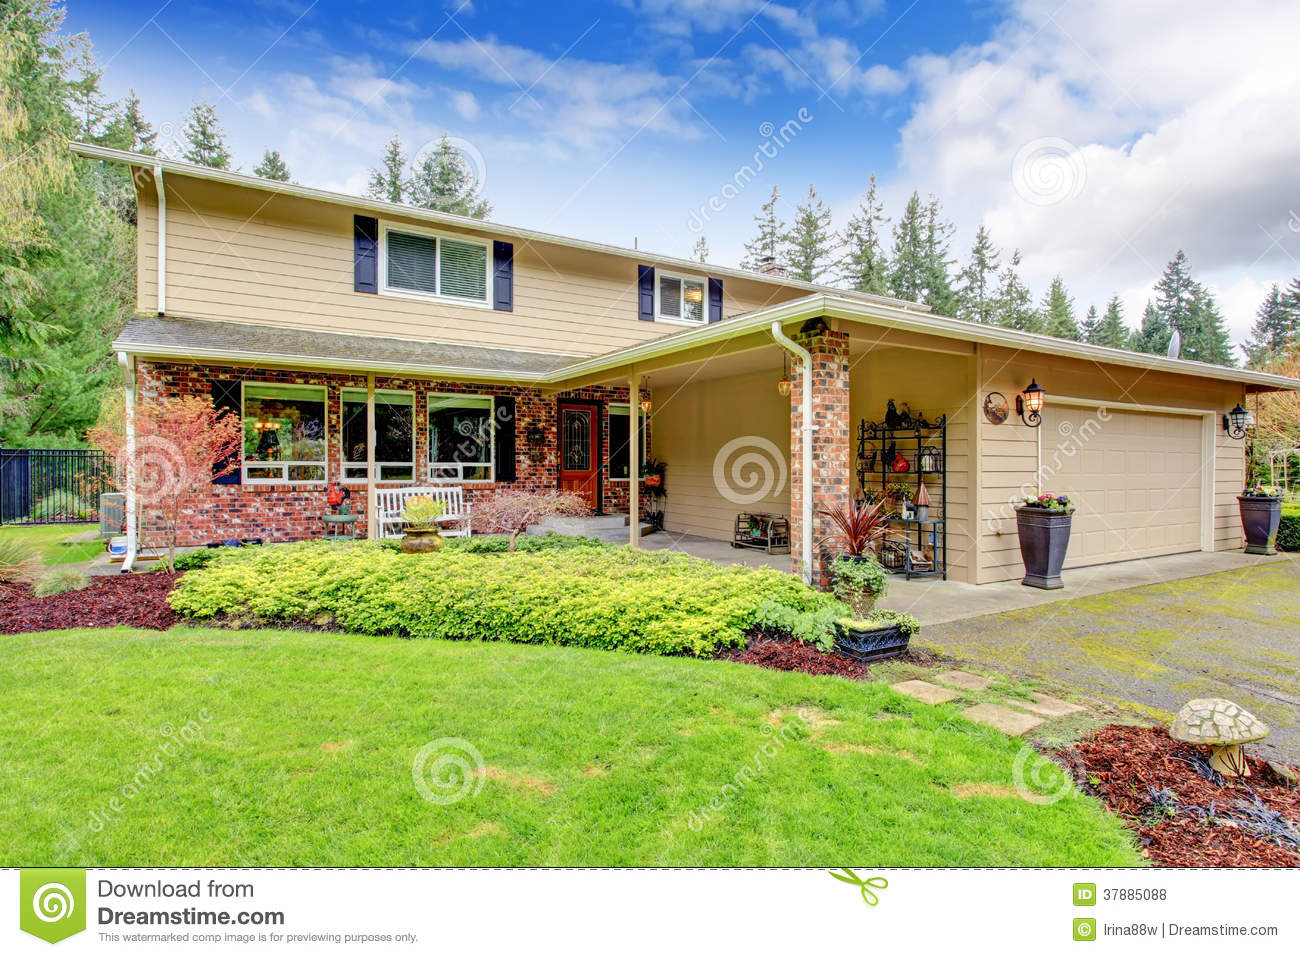 Posts Related Mobile Homes Look Like Log Cabins 117516 as well Cabin Plans as well Key West Style Homes Pictures furthermore 30916 furthermore Plan 750. on house plans with large front porches